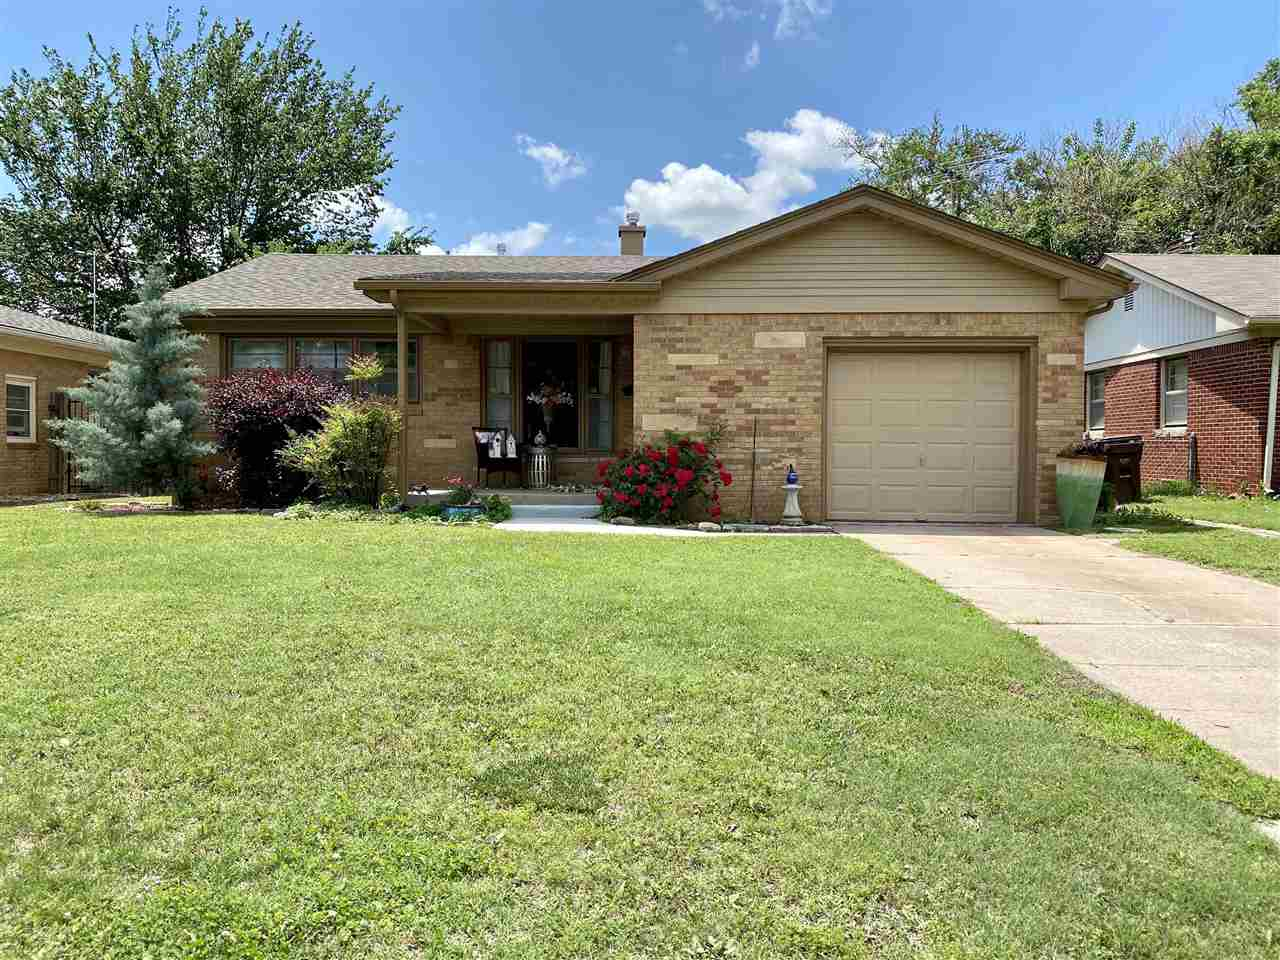 You found a hidden GEM in Wichita! Don't miss your chance to see this charming 3bed, 1 bath 1950s al